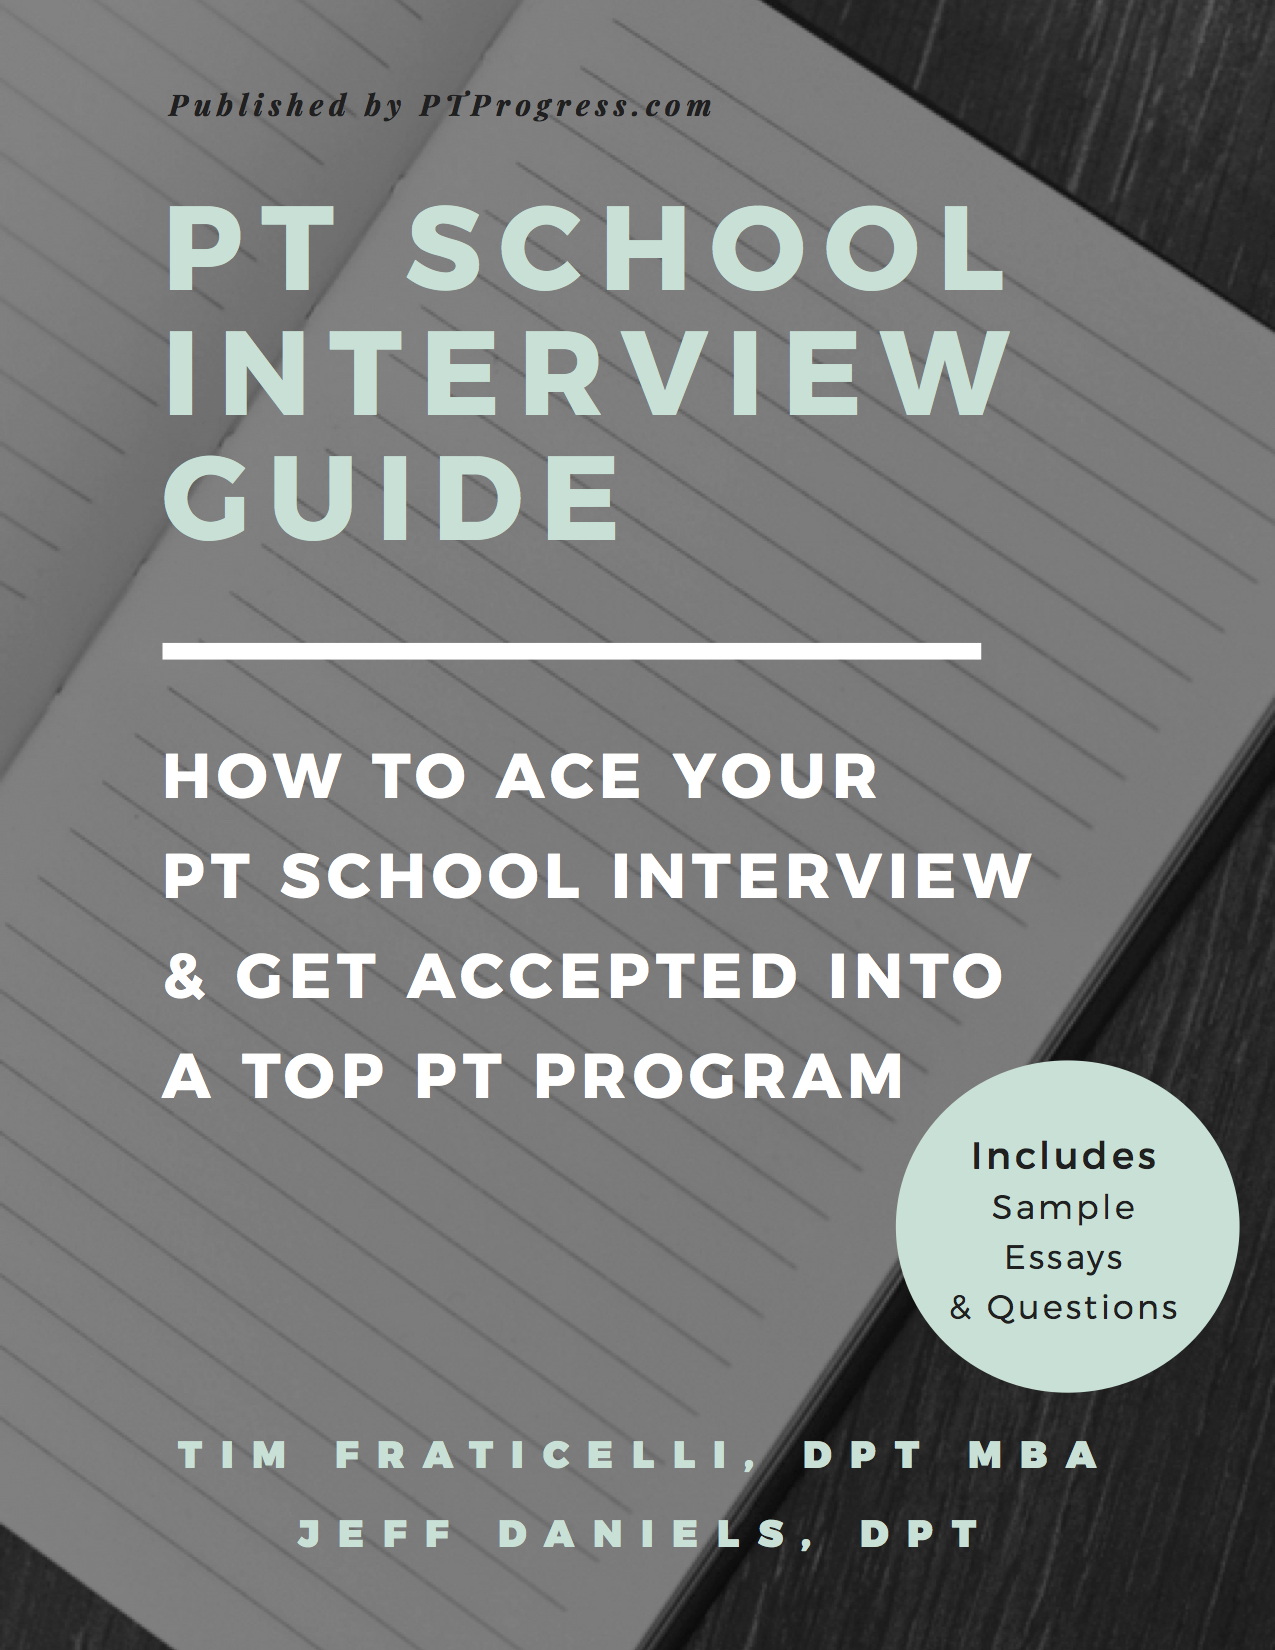 PT-School-Interview-Guide